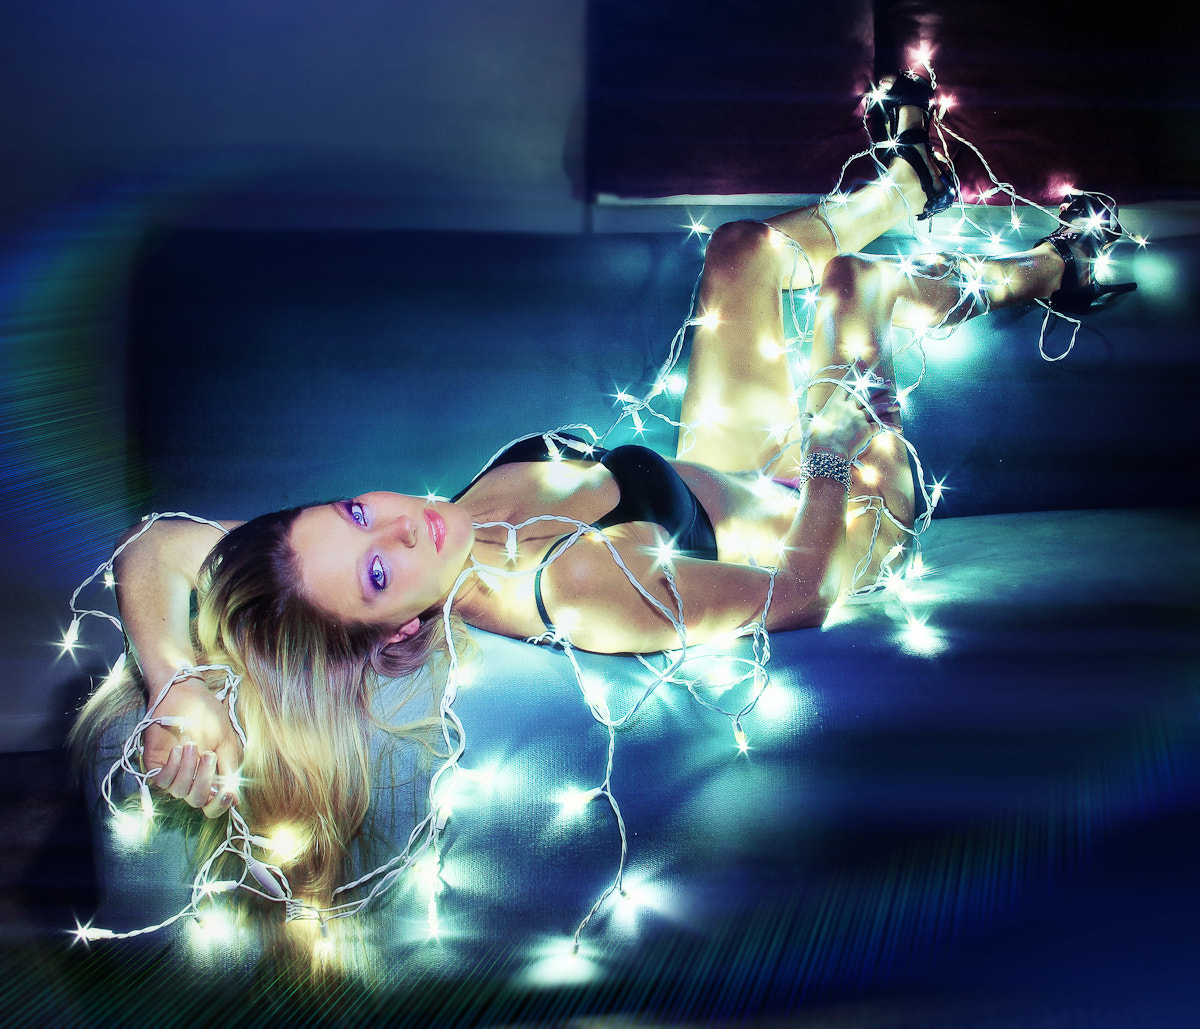 Photograph Katie Model ~ XMas Lights Gaga Style by CT  Pham on 500px